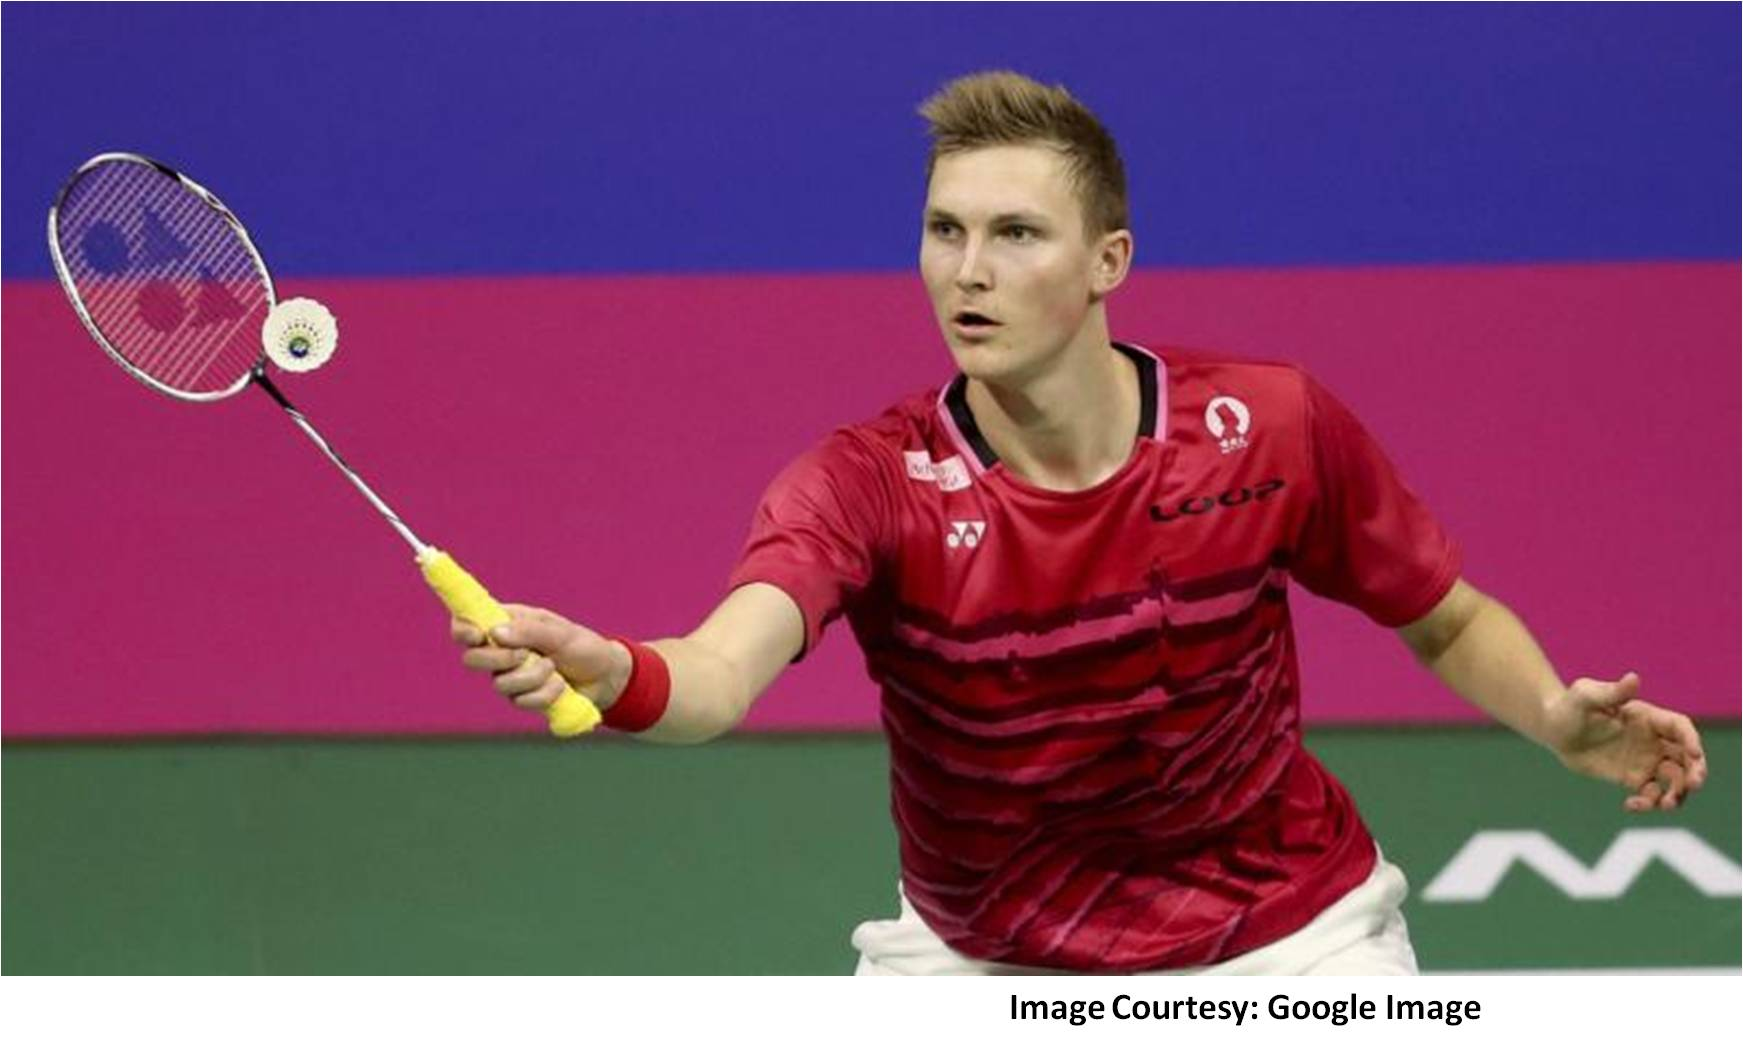 Viktor_Axelsen_Best_Badminton_Player